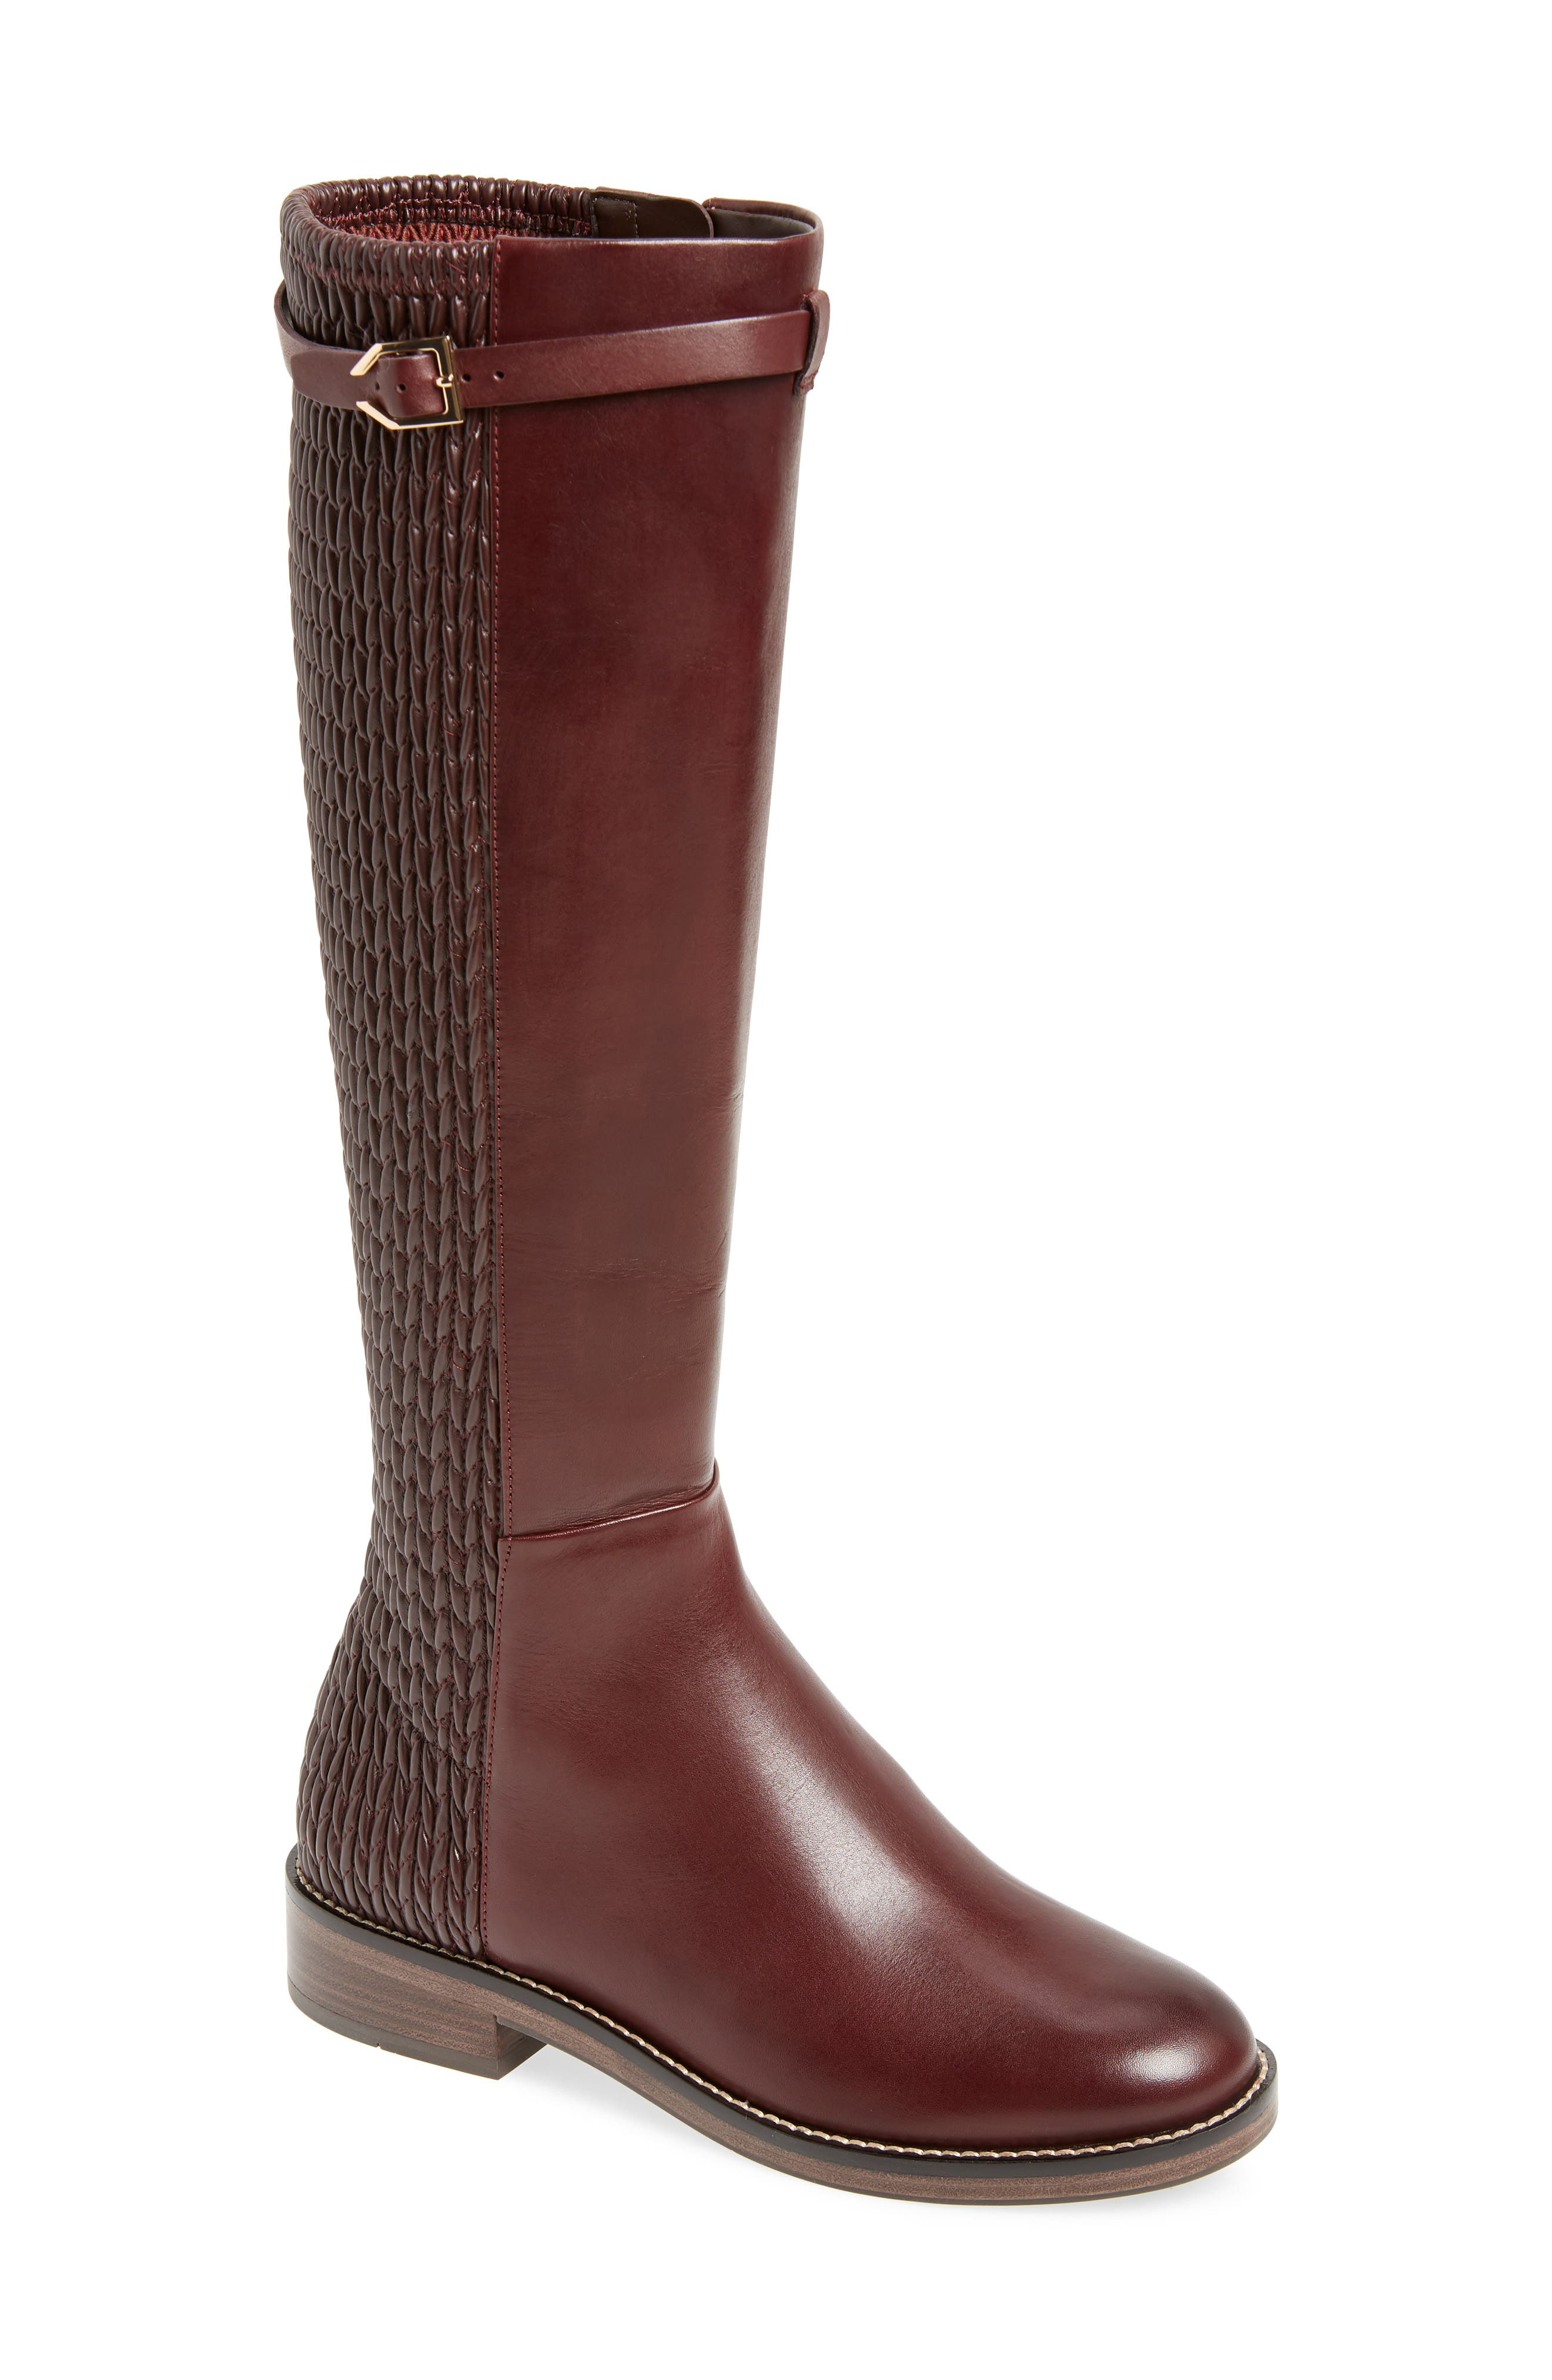 COLE HAAN Lexi Grand Knee High Stretch Boot, Main, color, CORDOVAN LEATHER